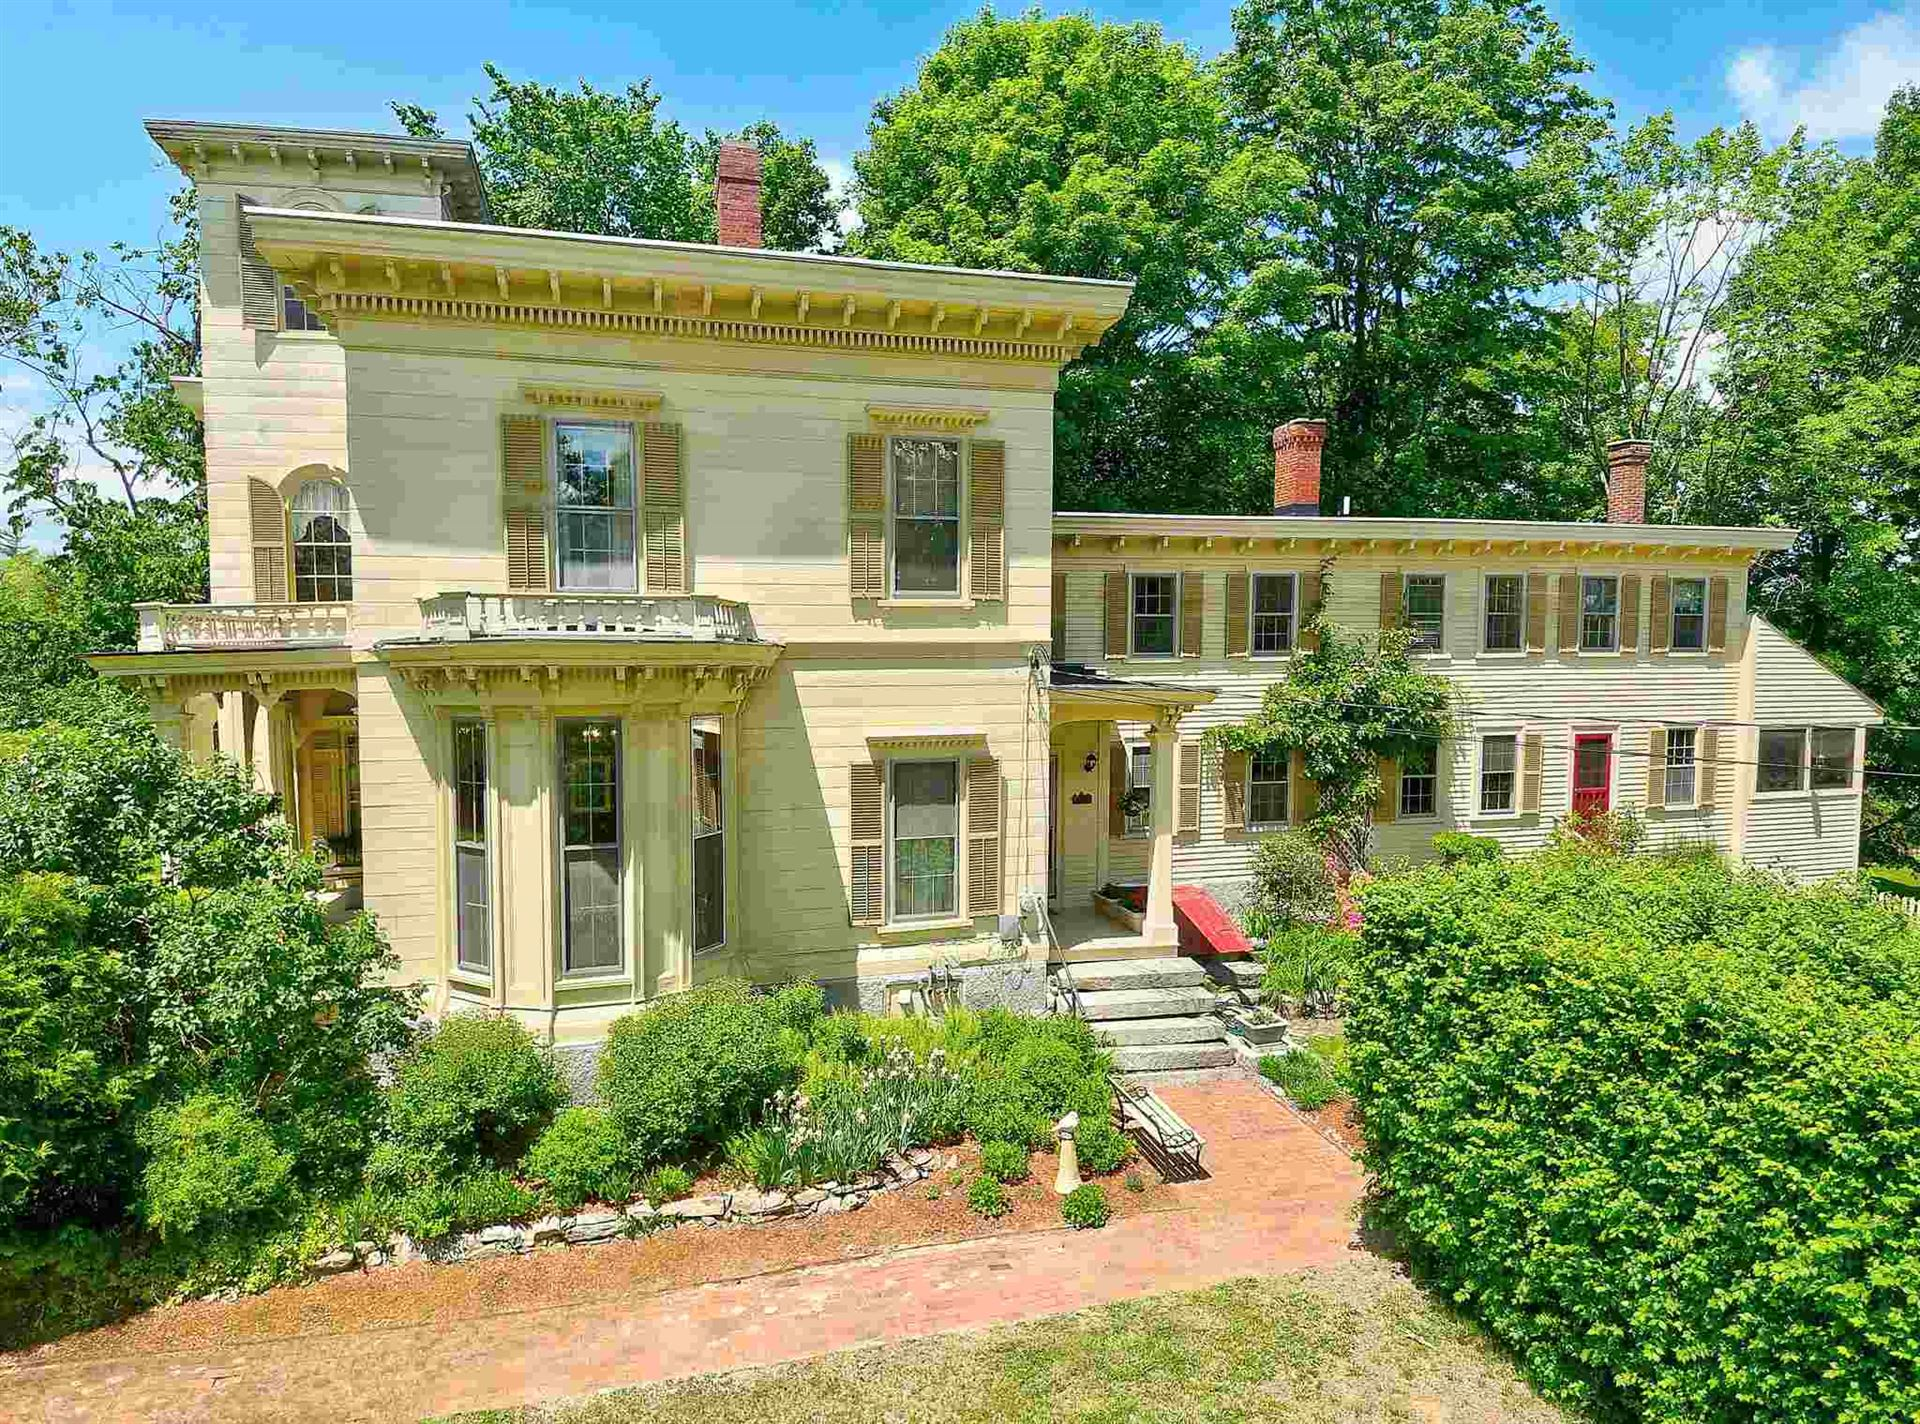 12 Chester Street, Chester, NH 03036 - #: 4809562